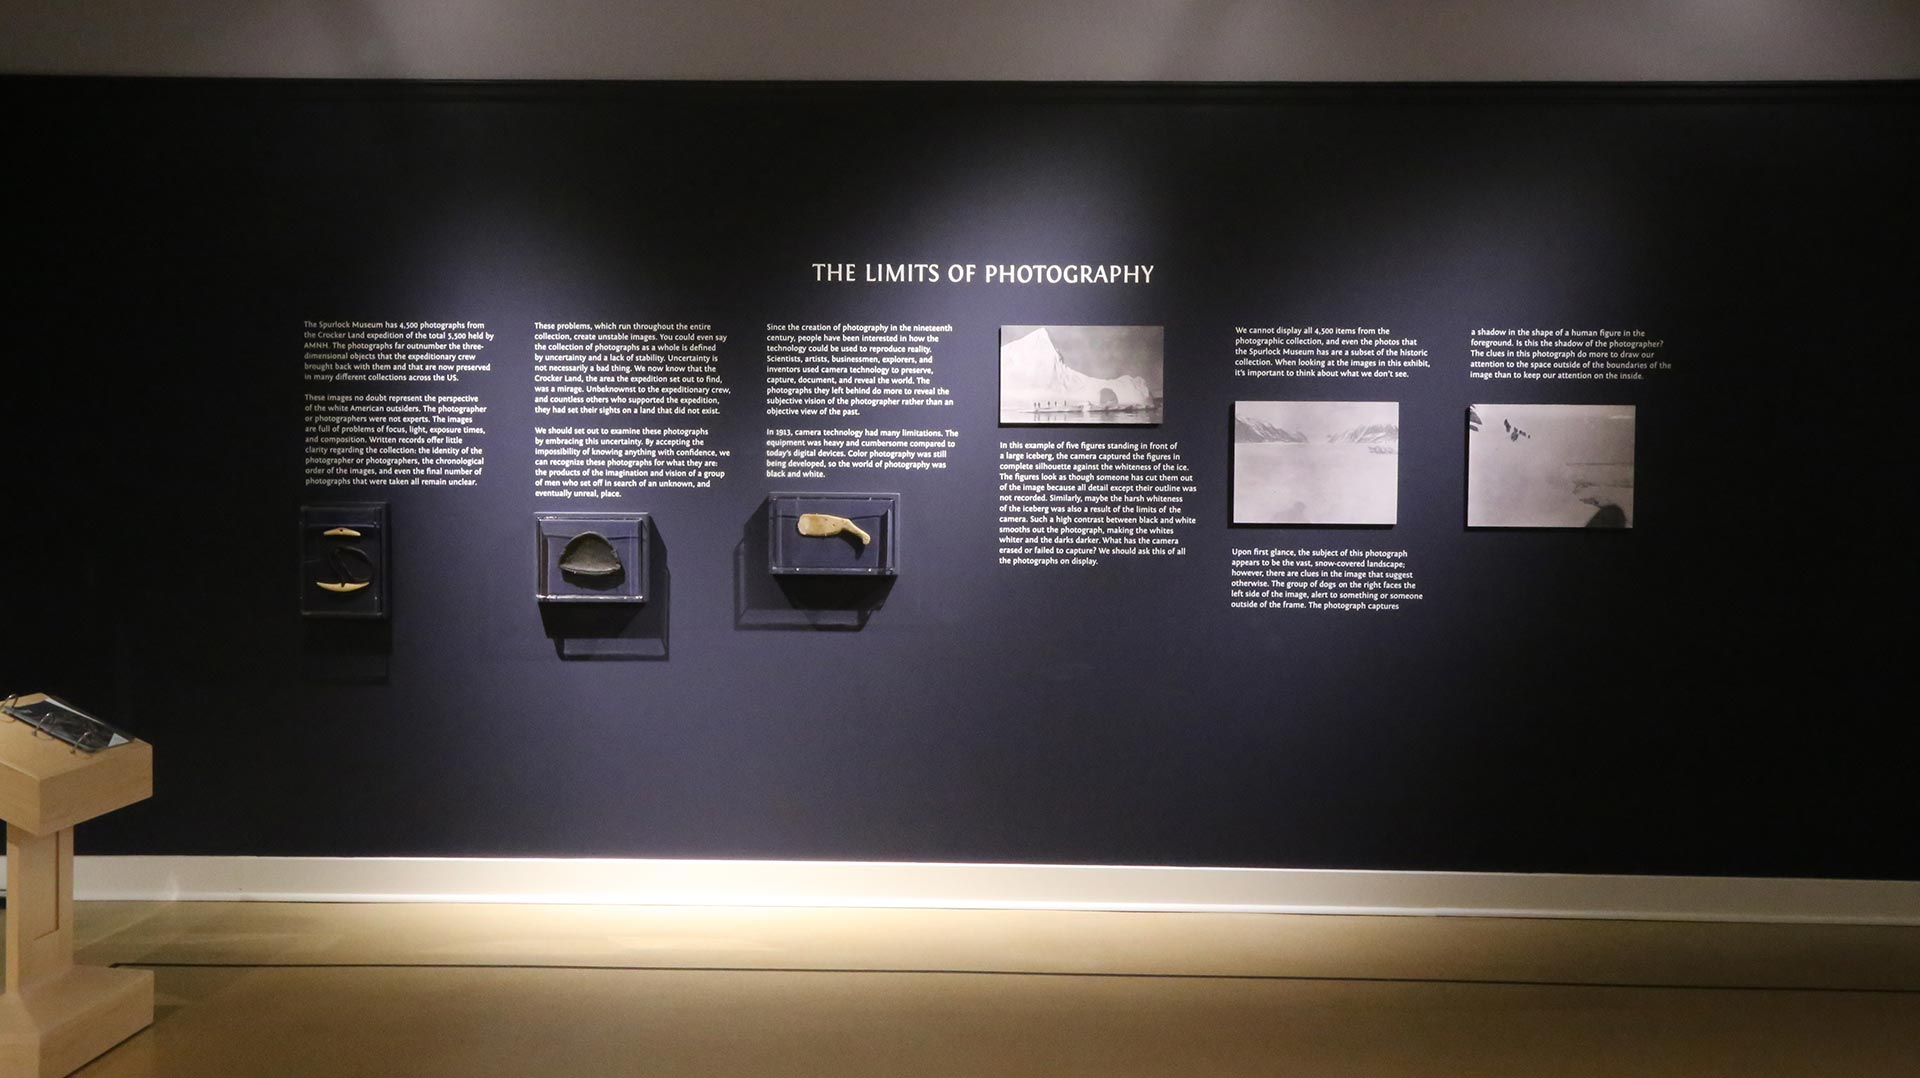 artifacts and photos on the wall aligned with text about the limits of photography